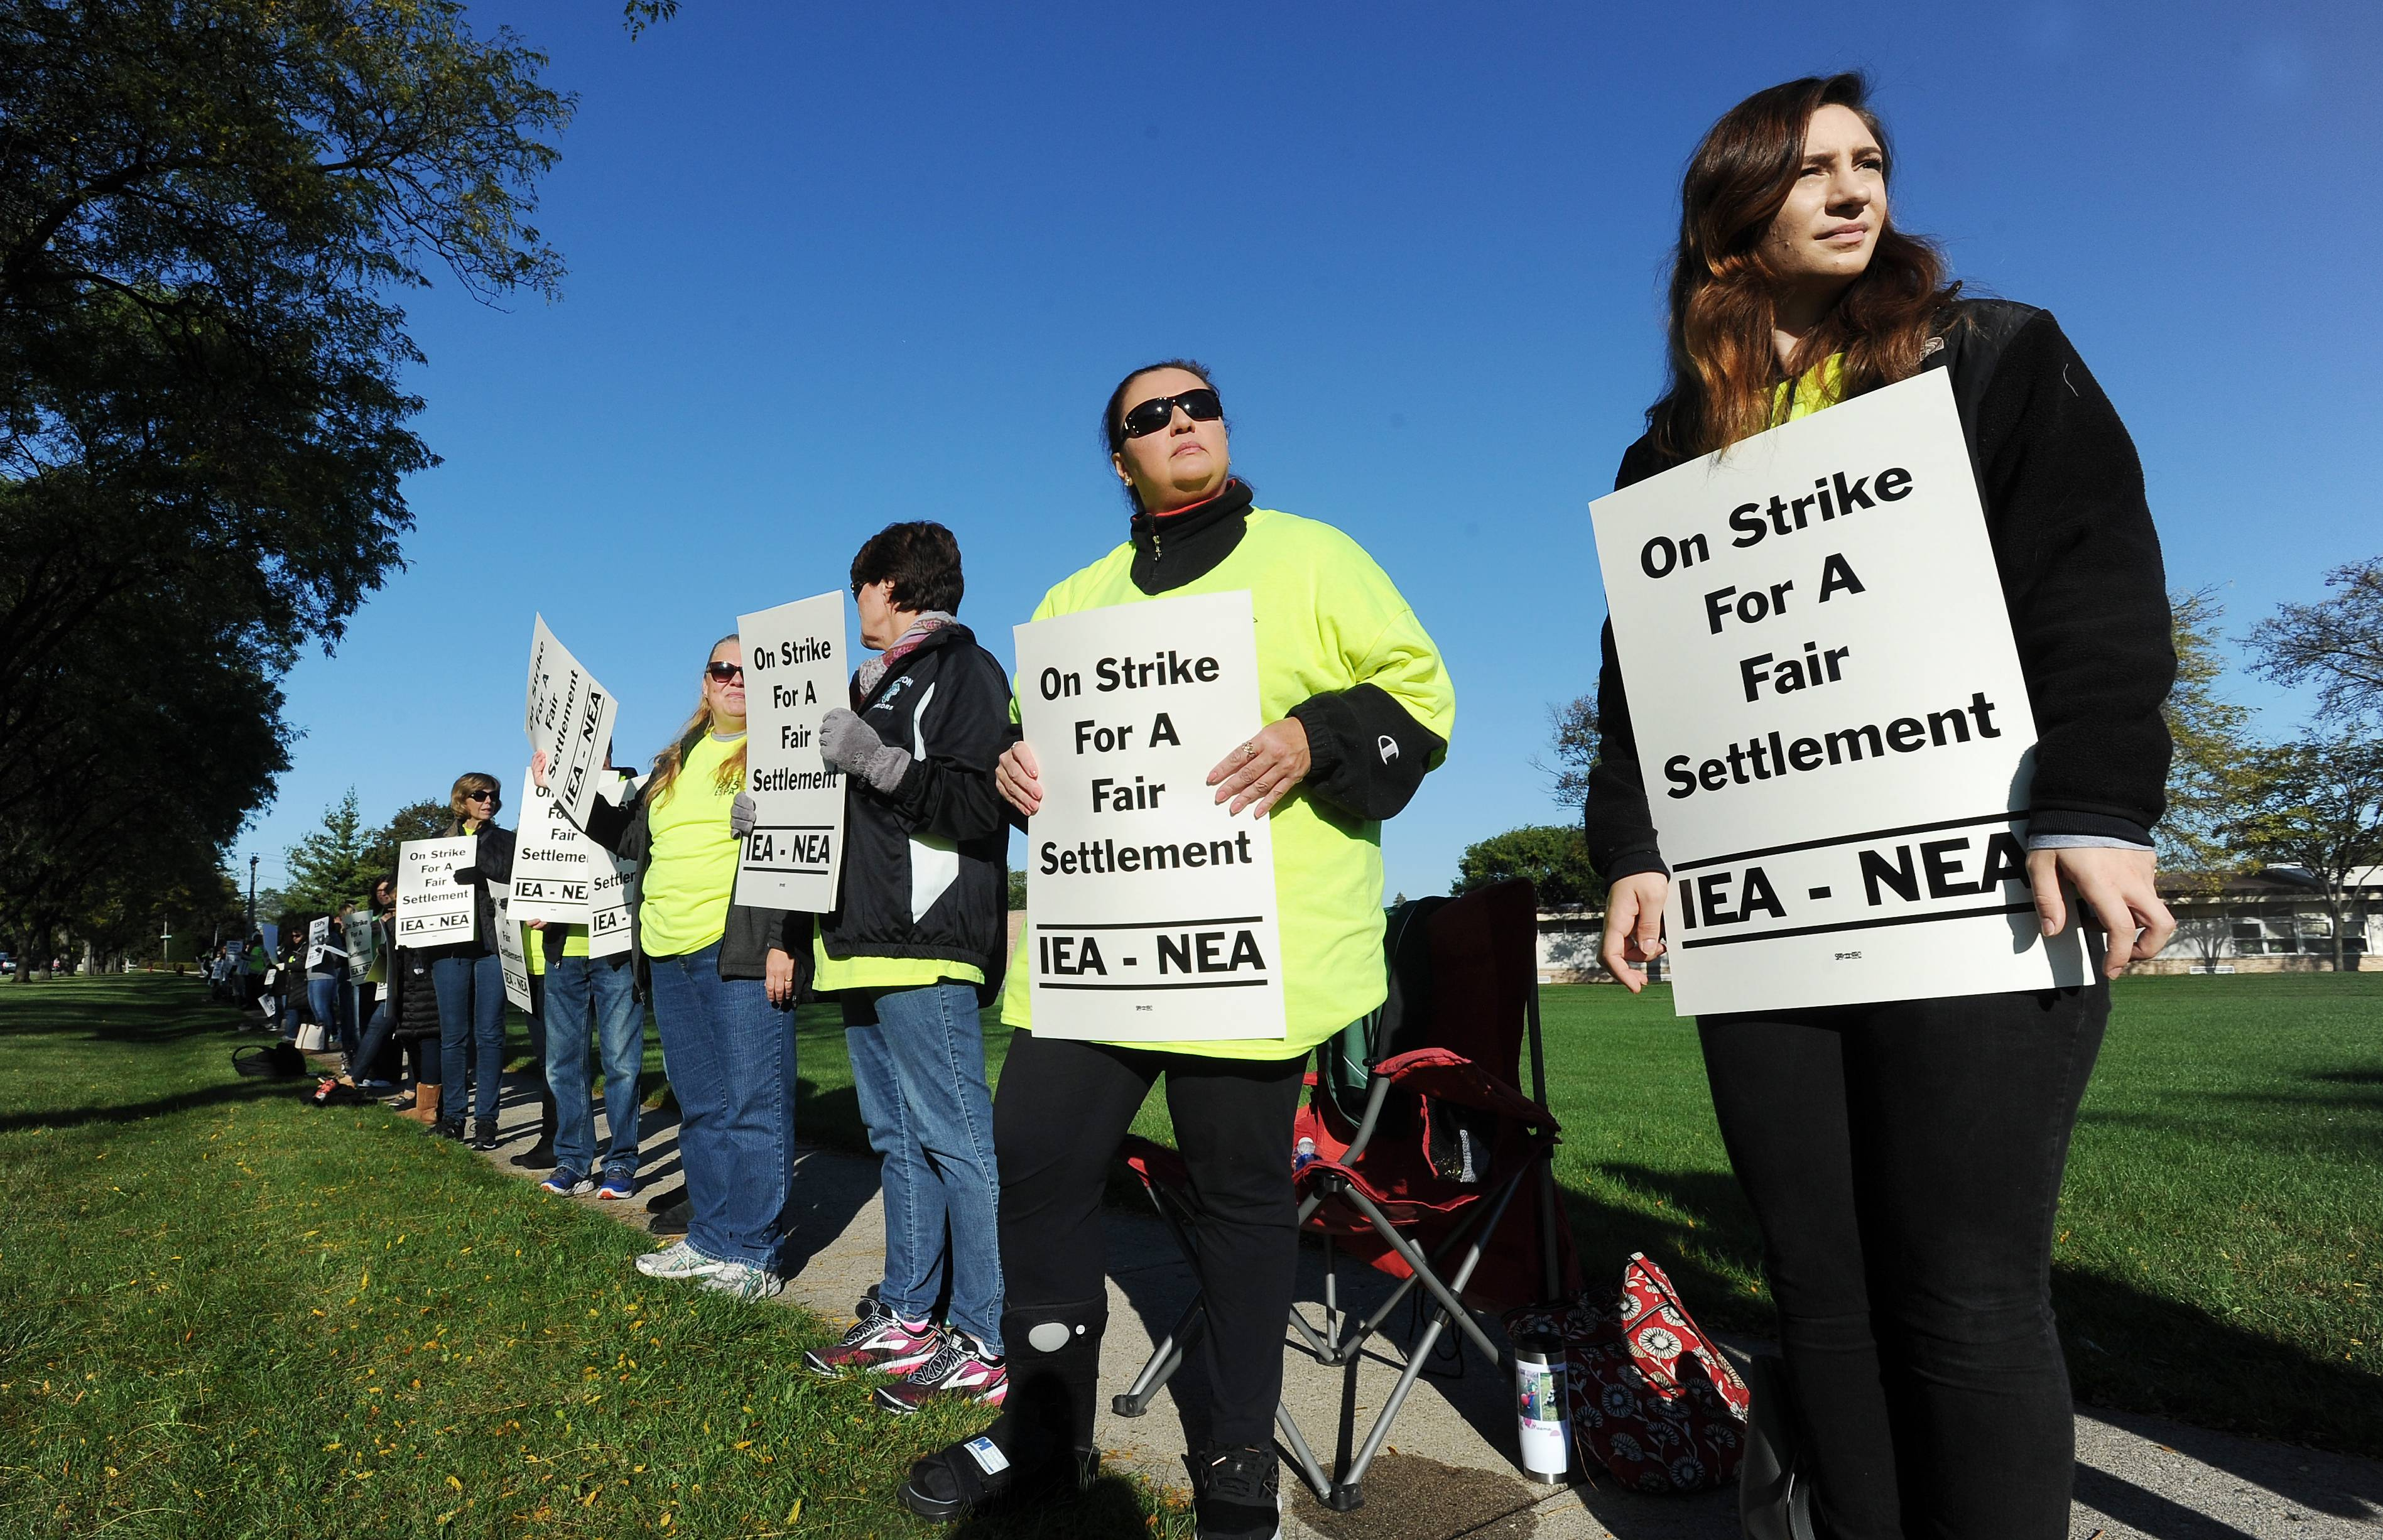 Dawn Patrol: All support staff can strike in Dist. 15, judge rules